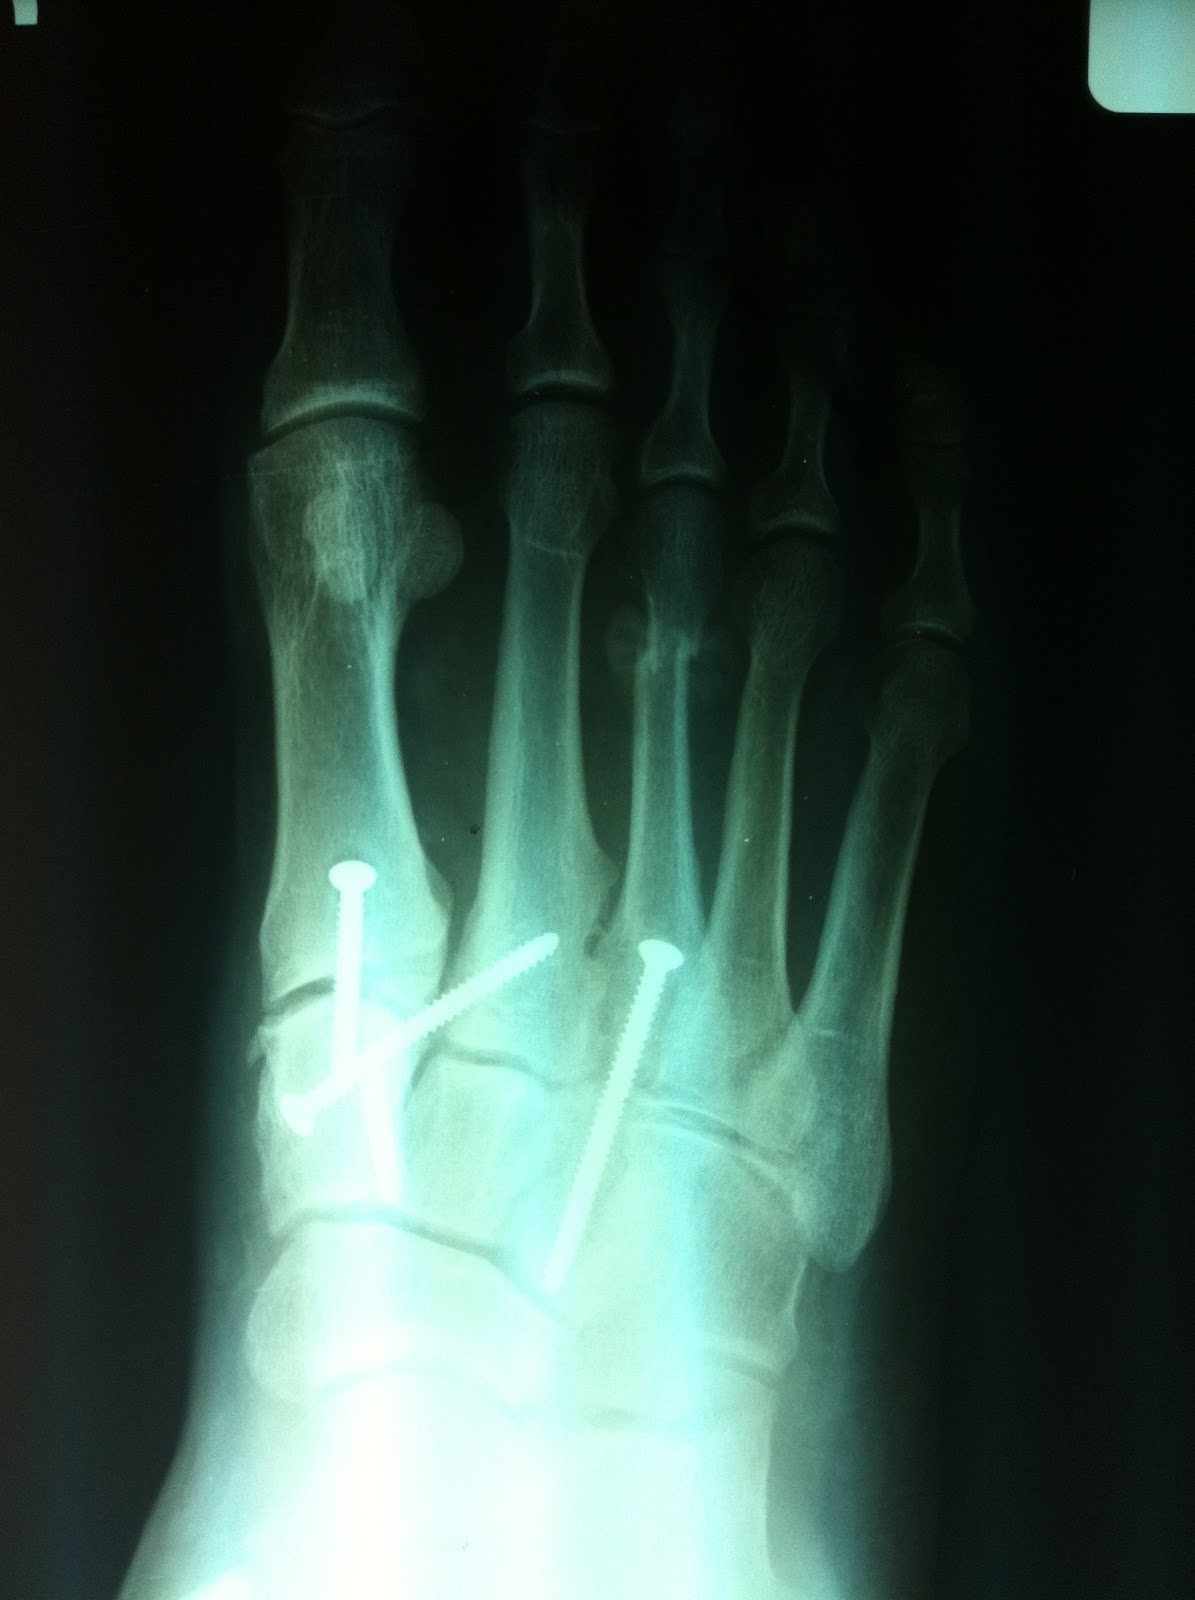 Podiatry Shoe Review: Scared Straight: Foot X-Rays that will